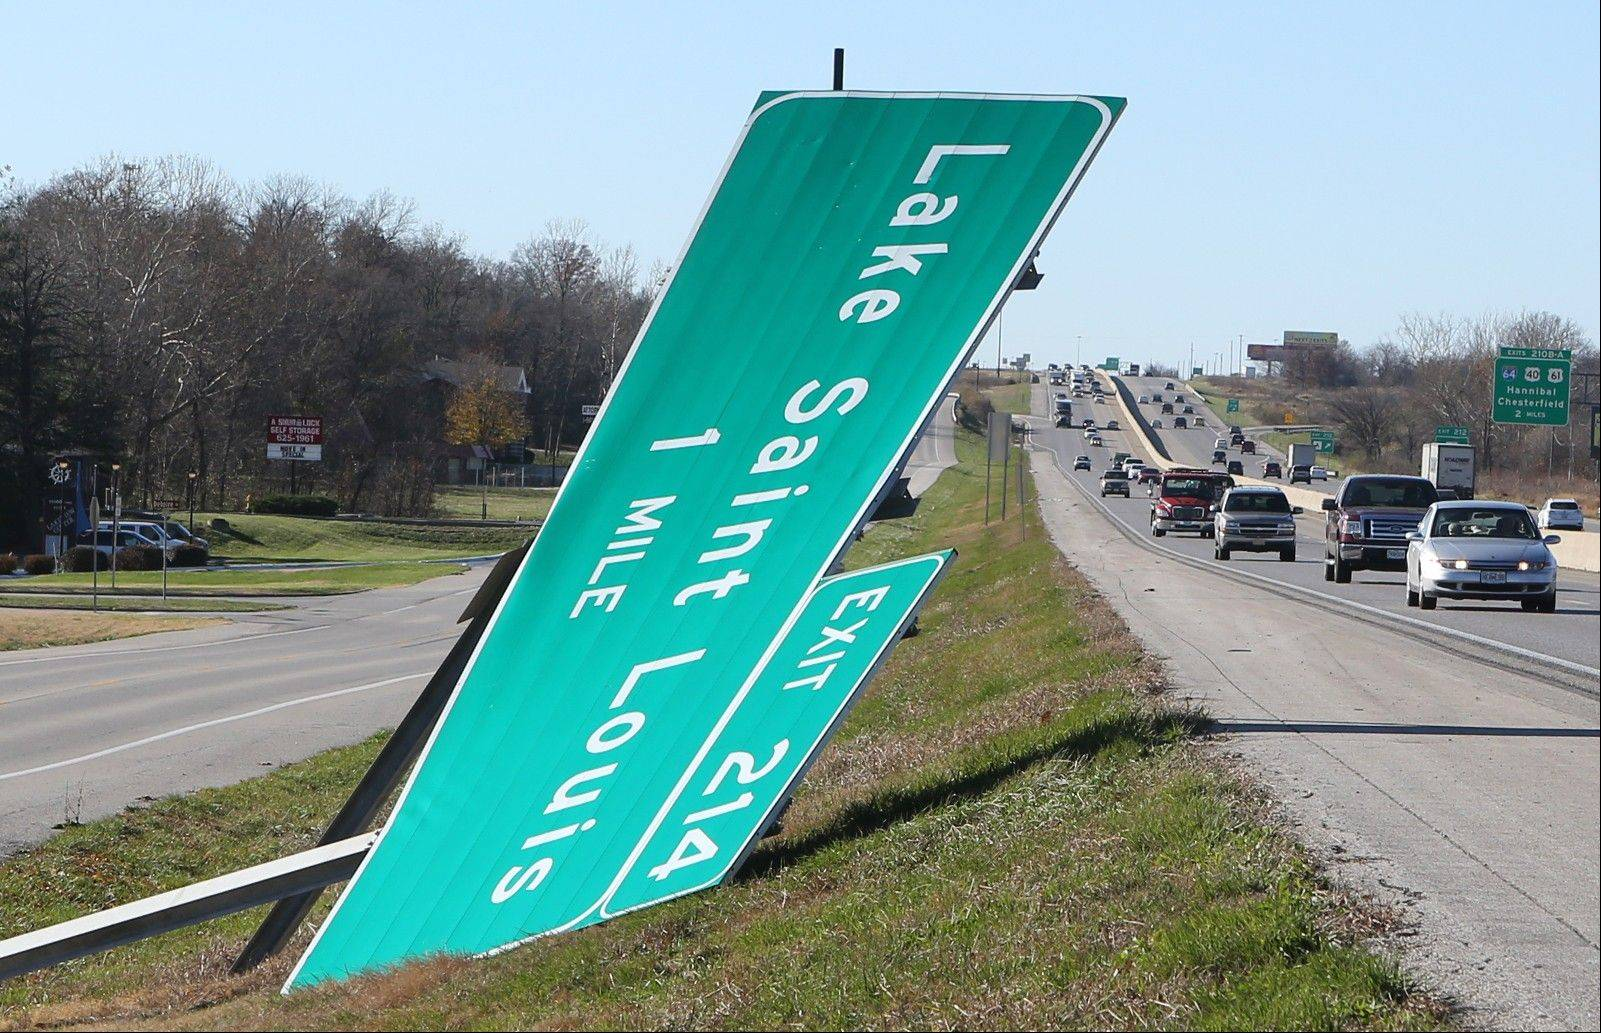 The Lake St. Louis sign on I-70 was knocked down on Sunday, Nov. 17, 2013, following the storm that raced through the area.